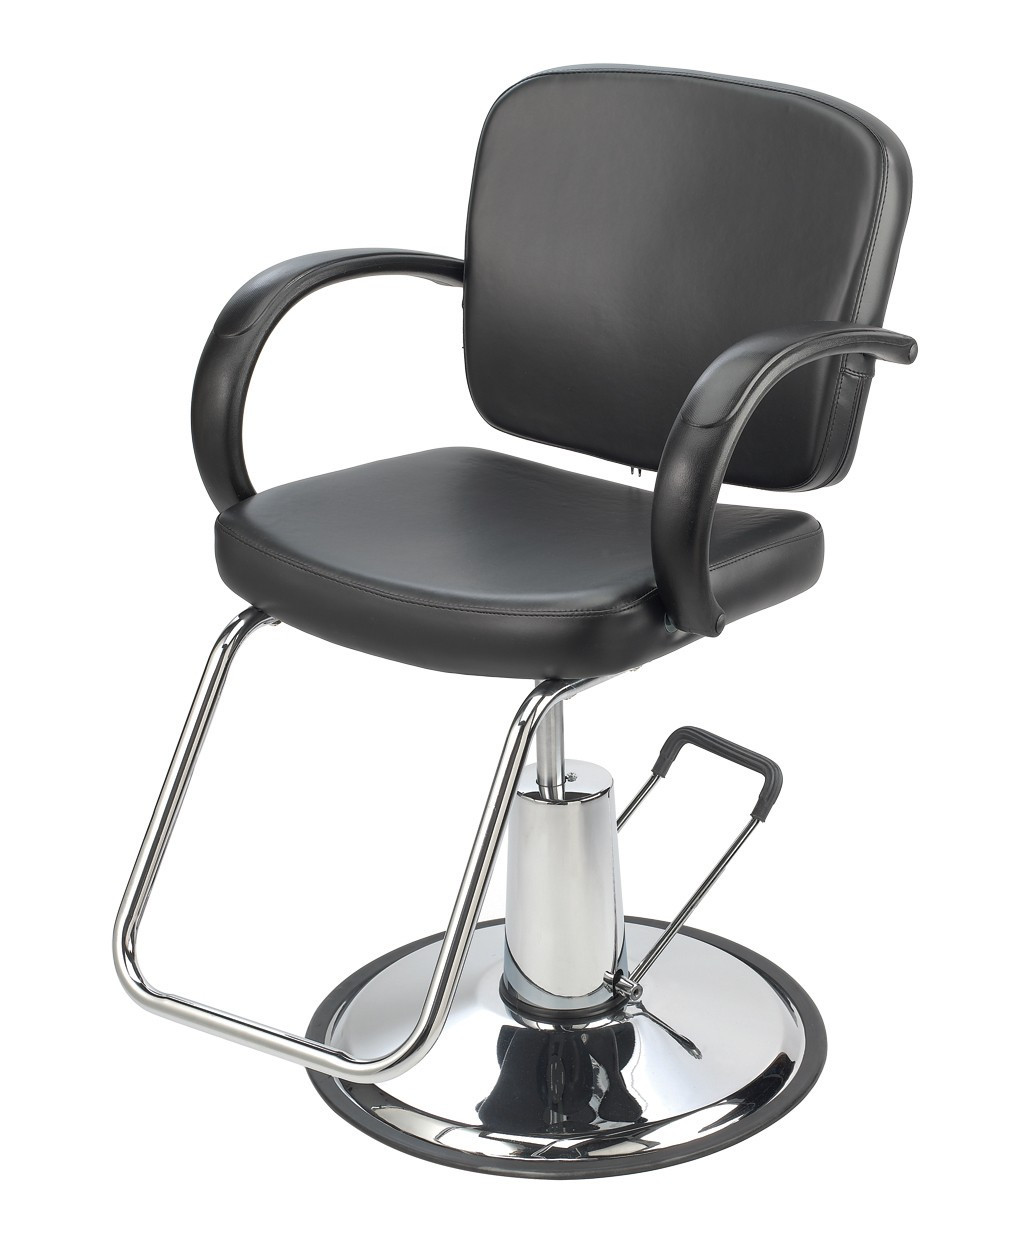 Pibbs messina styling chair 3606 a1afacial for A lenox nail skin care salon